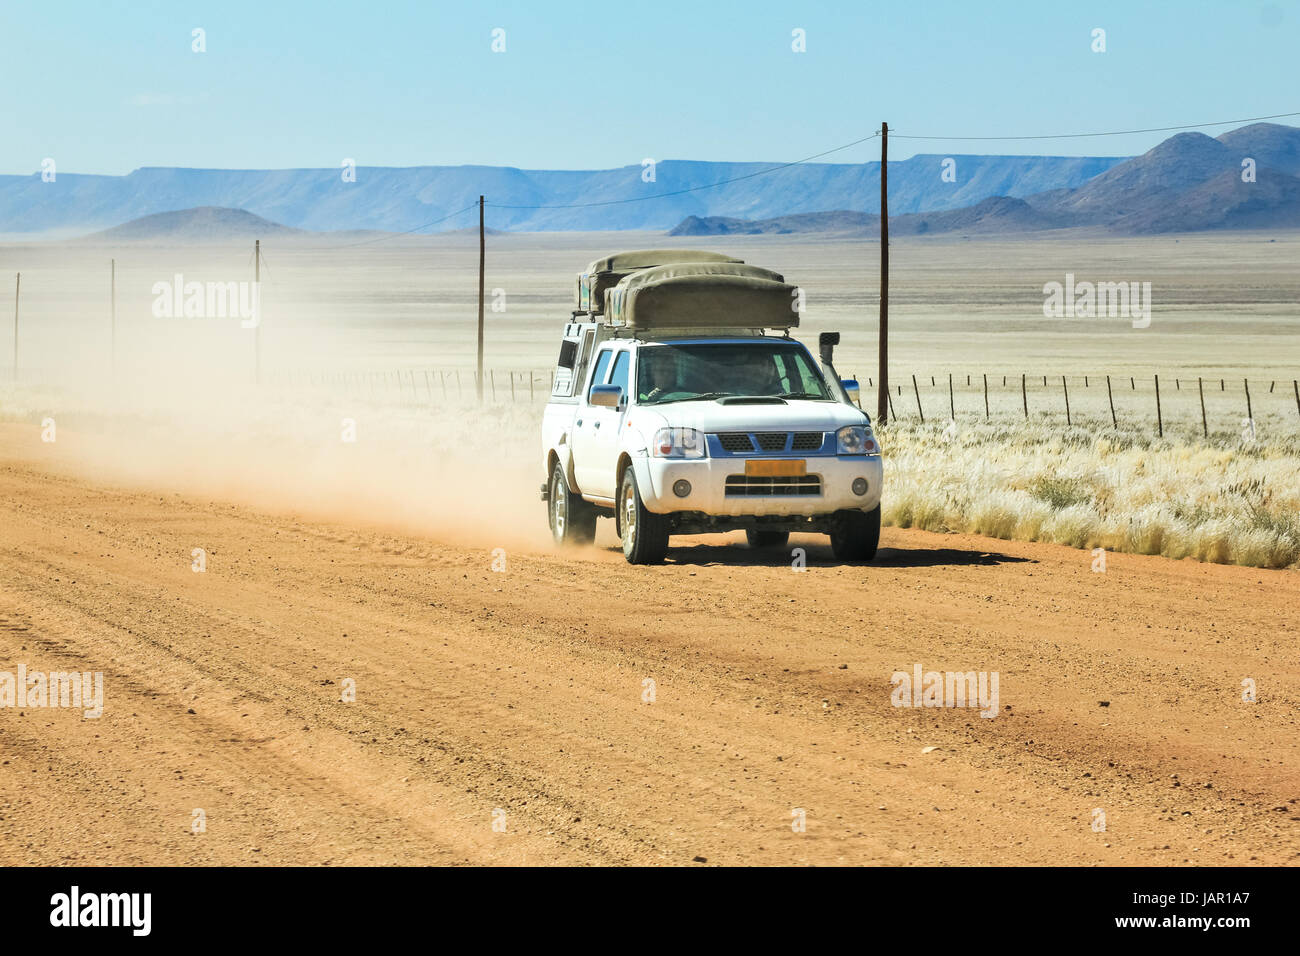 Pickup truck driving fast with dust cloud on desert road - Stock Image